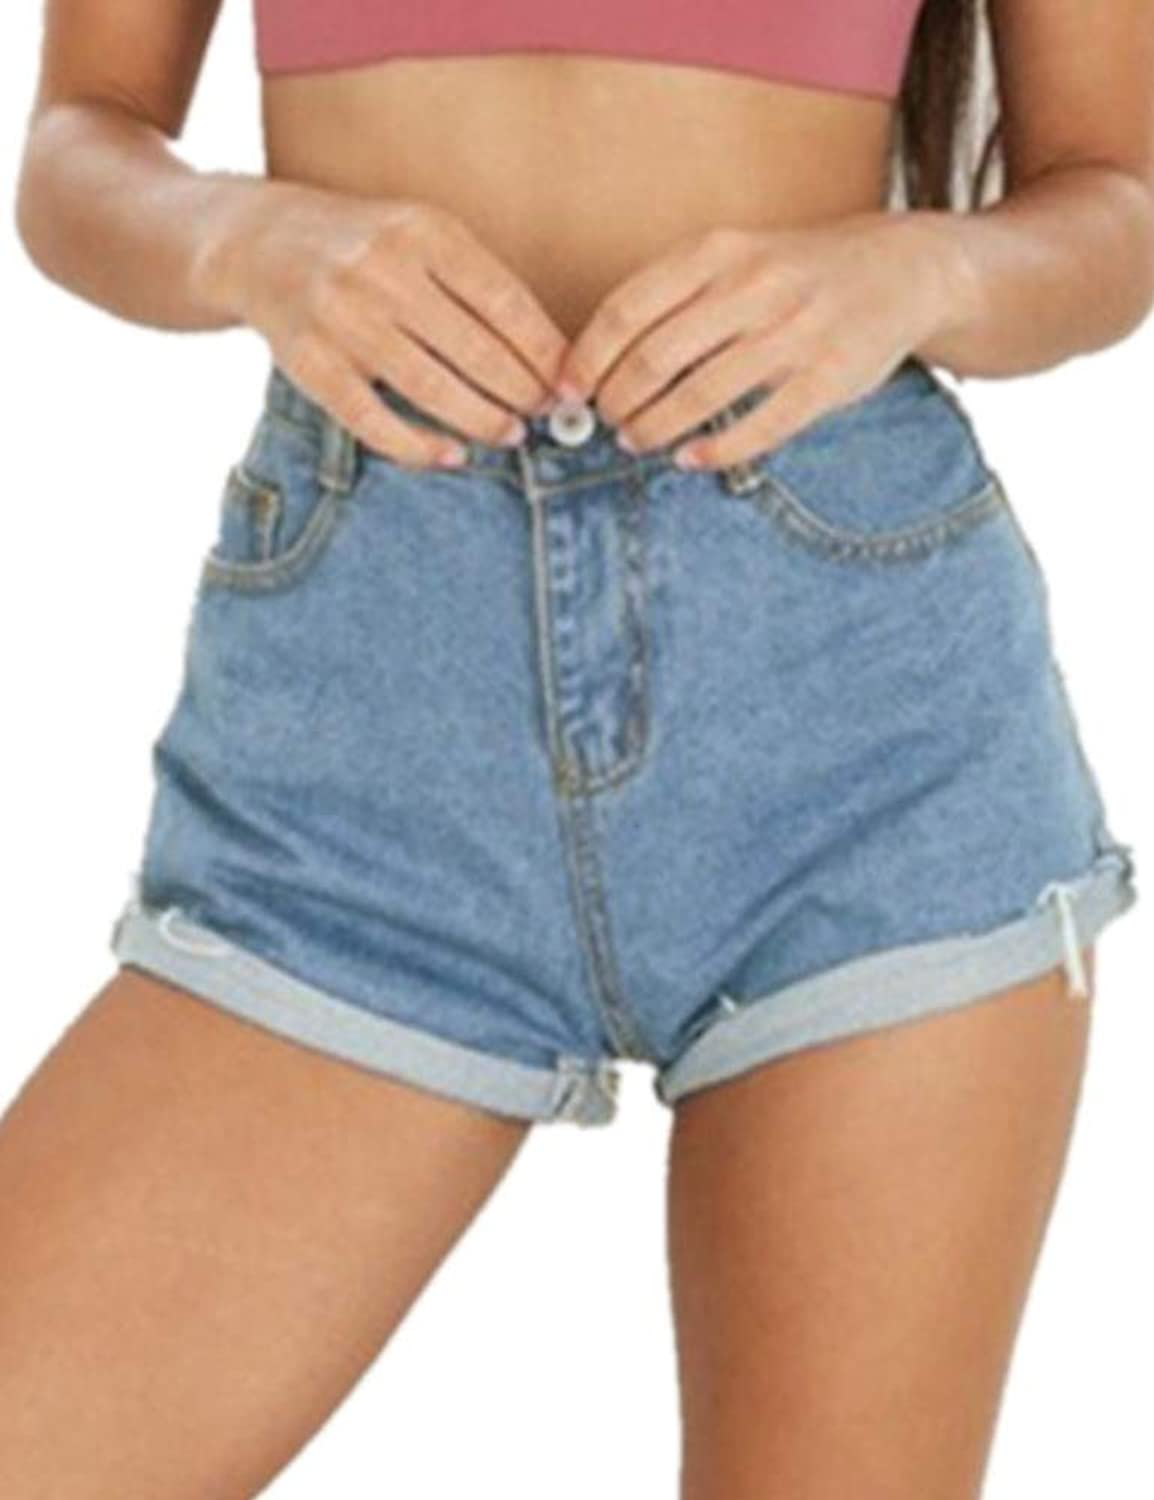 Hioinieiy Women's High Waisted Jean Shorts Vintage Stretch Wash Denim Jeans Pants